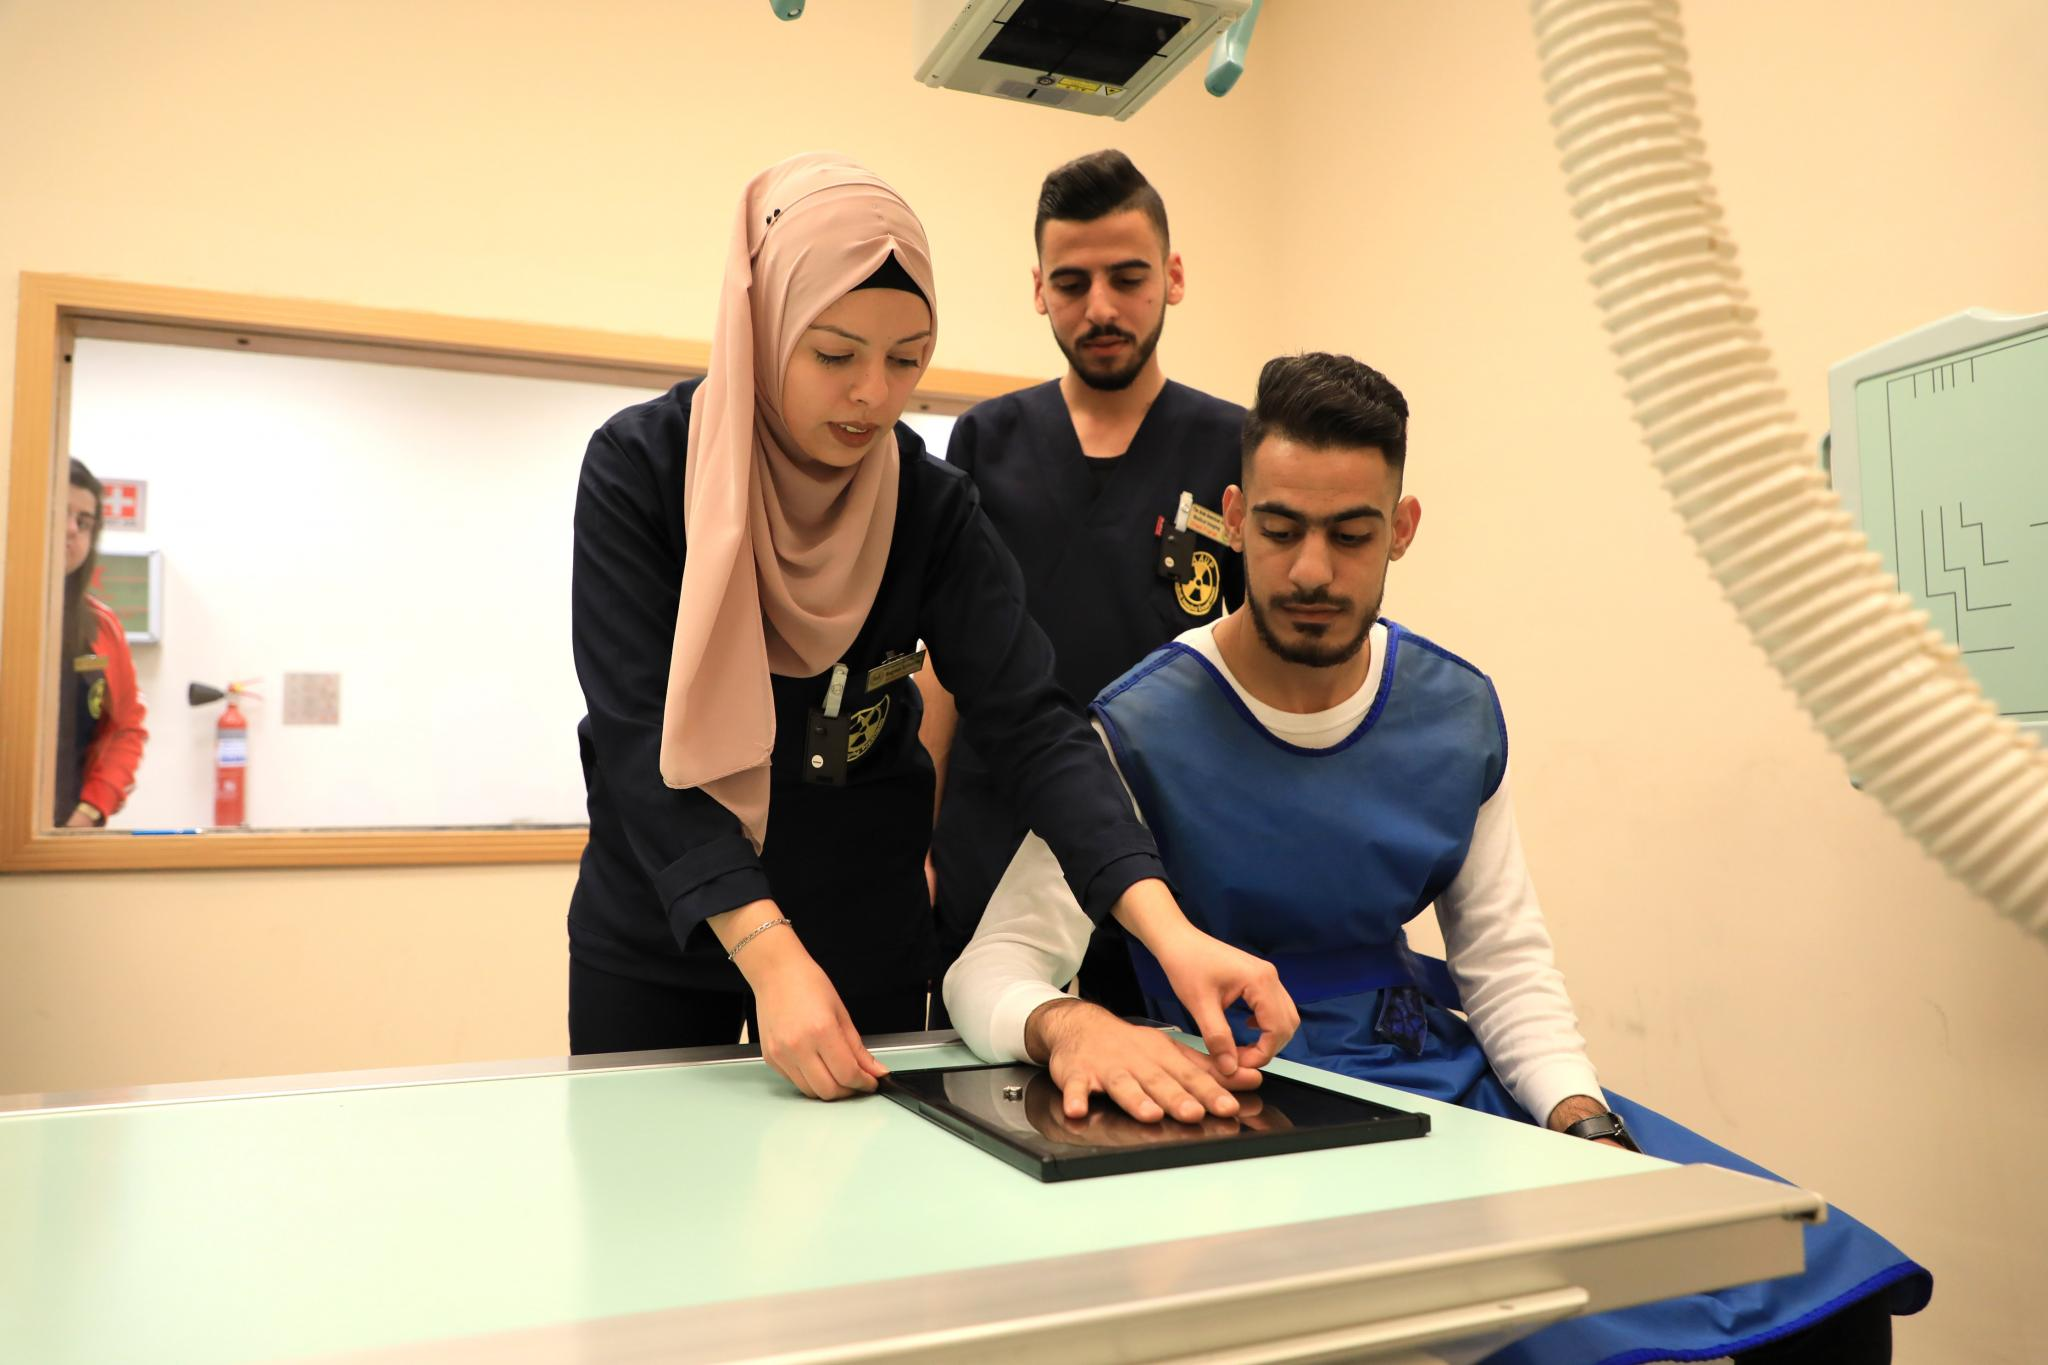 AAUP is the First Palestinian University to Provide TLD Device to Measure X-Ray Dose During Training